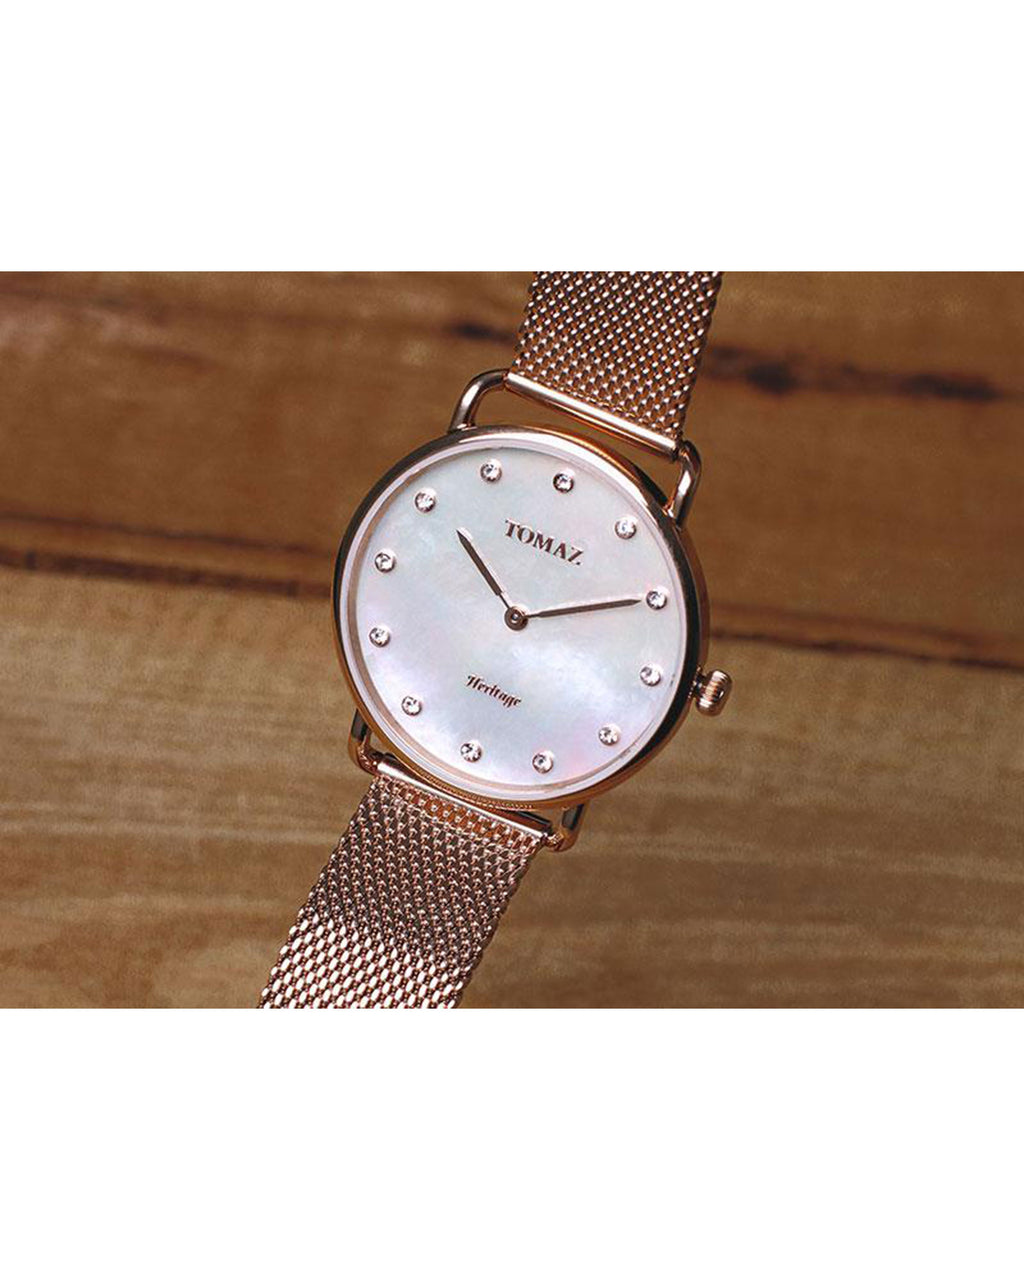 Tomaz Ladies Watch G1L-D1 (Rose Gold/Pearl)